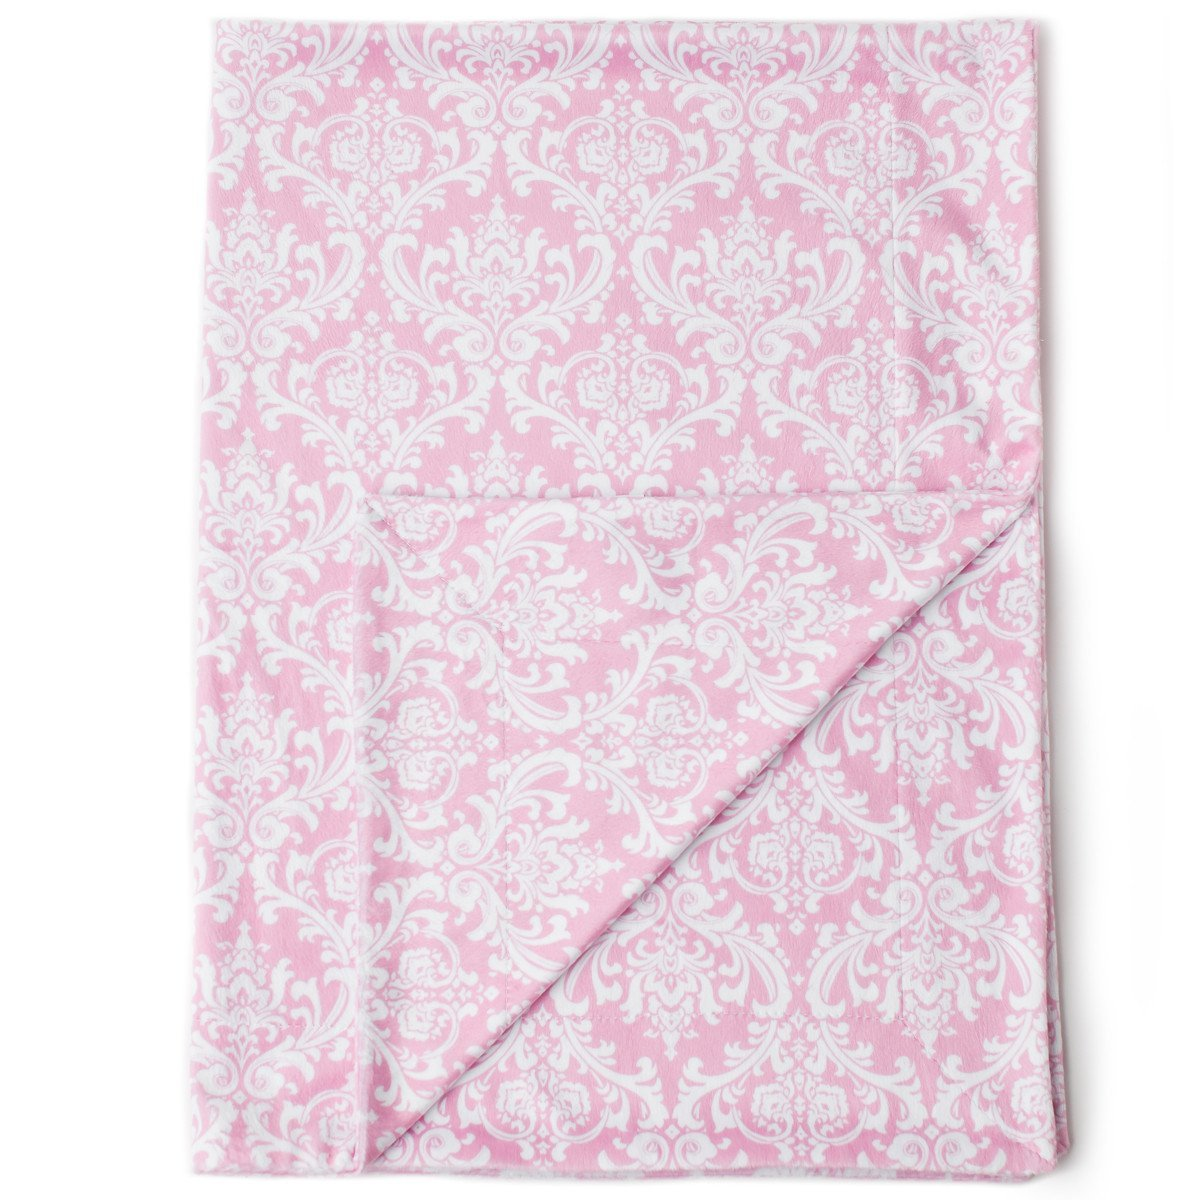 """Kids N' Such Minky Baby Blanket 30"""" x 40"""" - Pink Damask - Soft Swaddle Blanket for Newborns and Toddlers - Best for Girls Crib Bedding, Nursery, and Security - Plush Double Layer Fleece Fabric"""